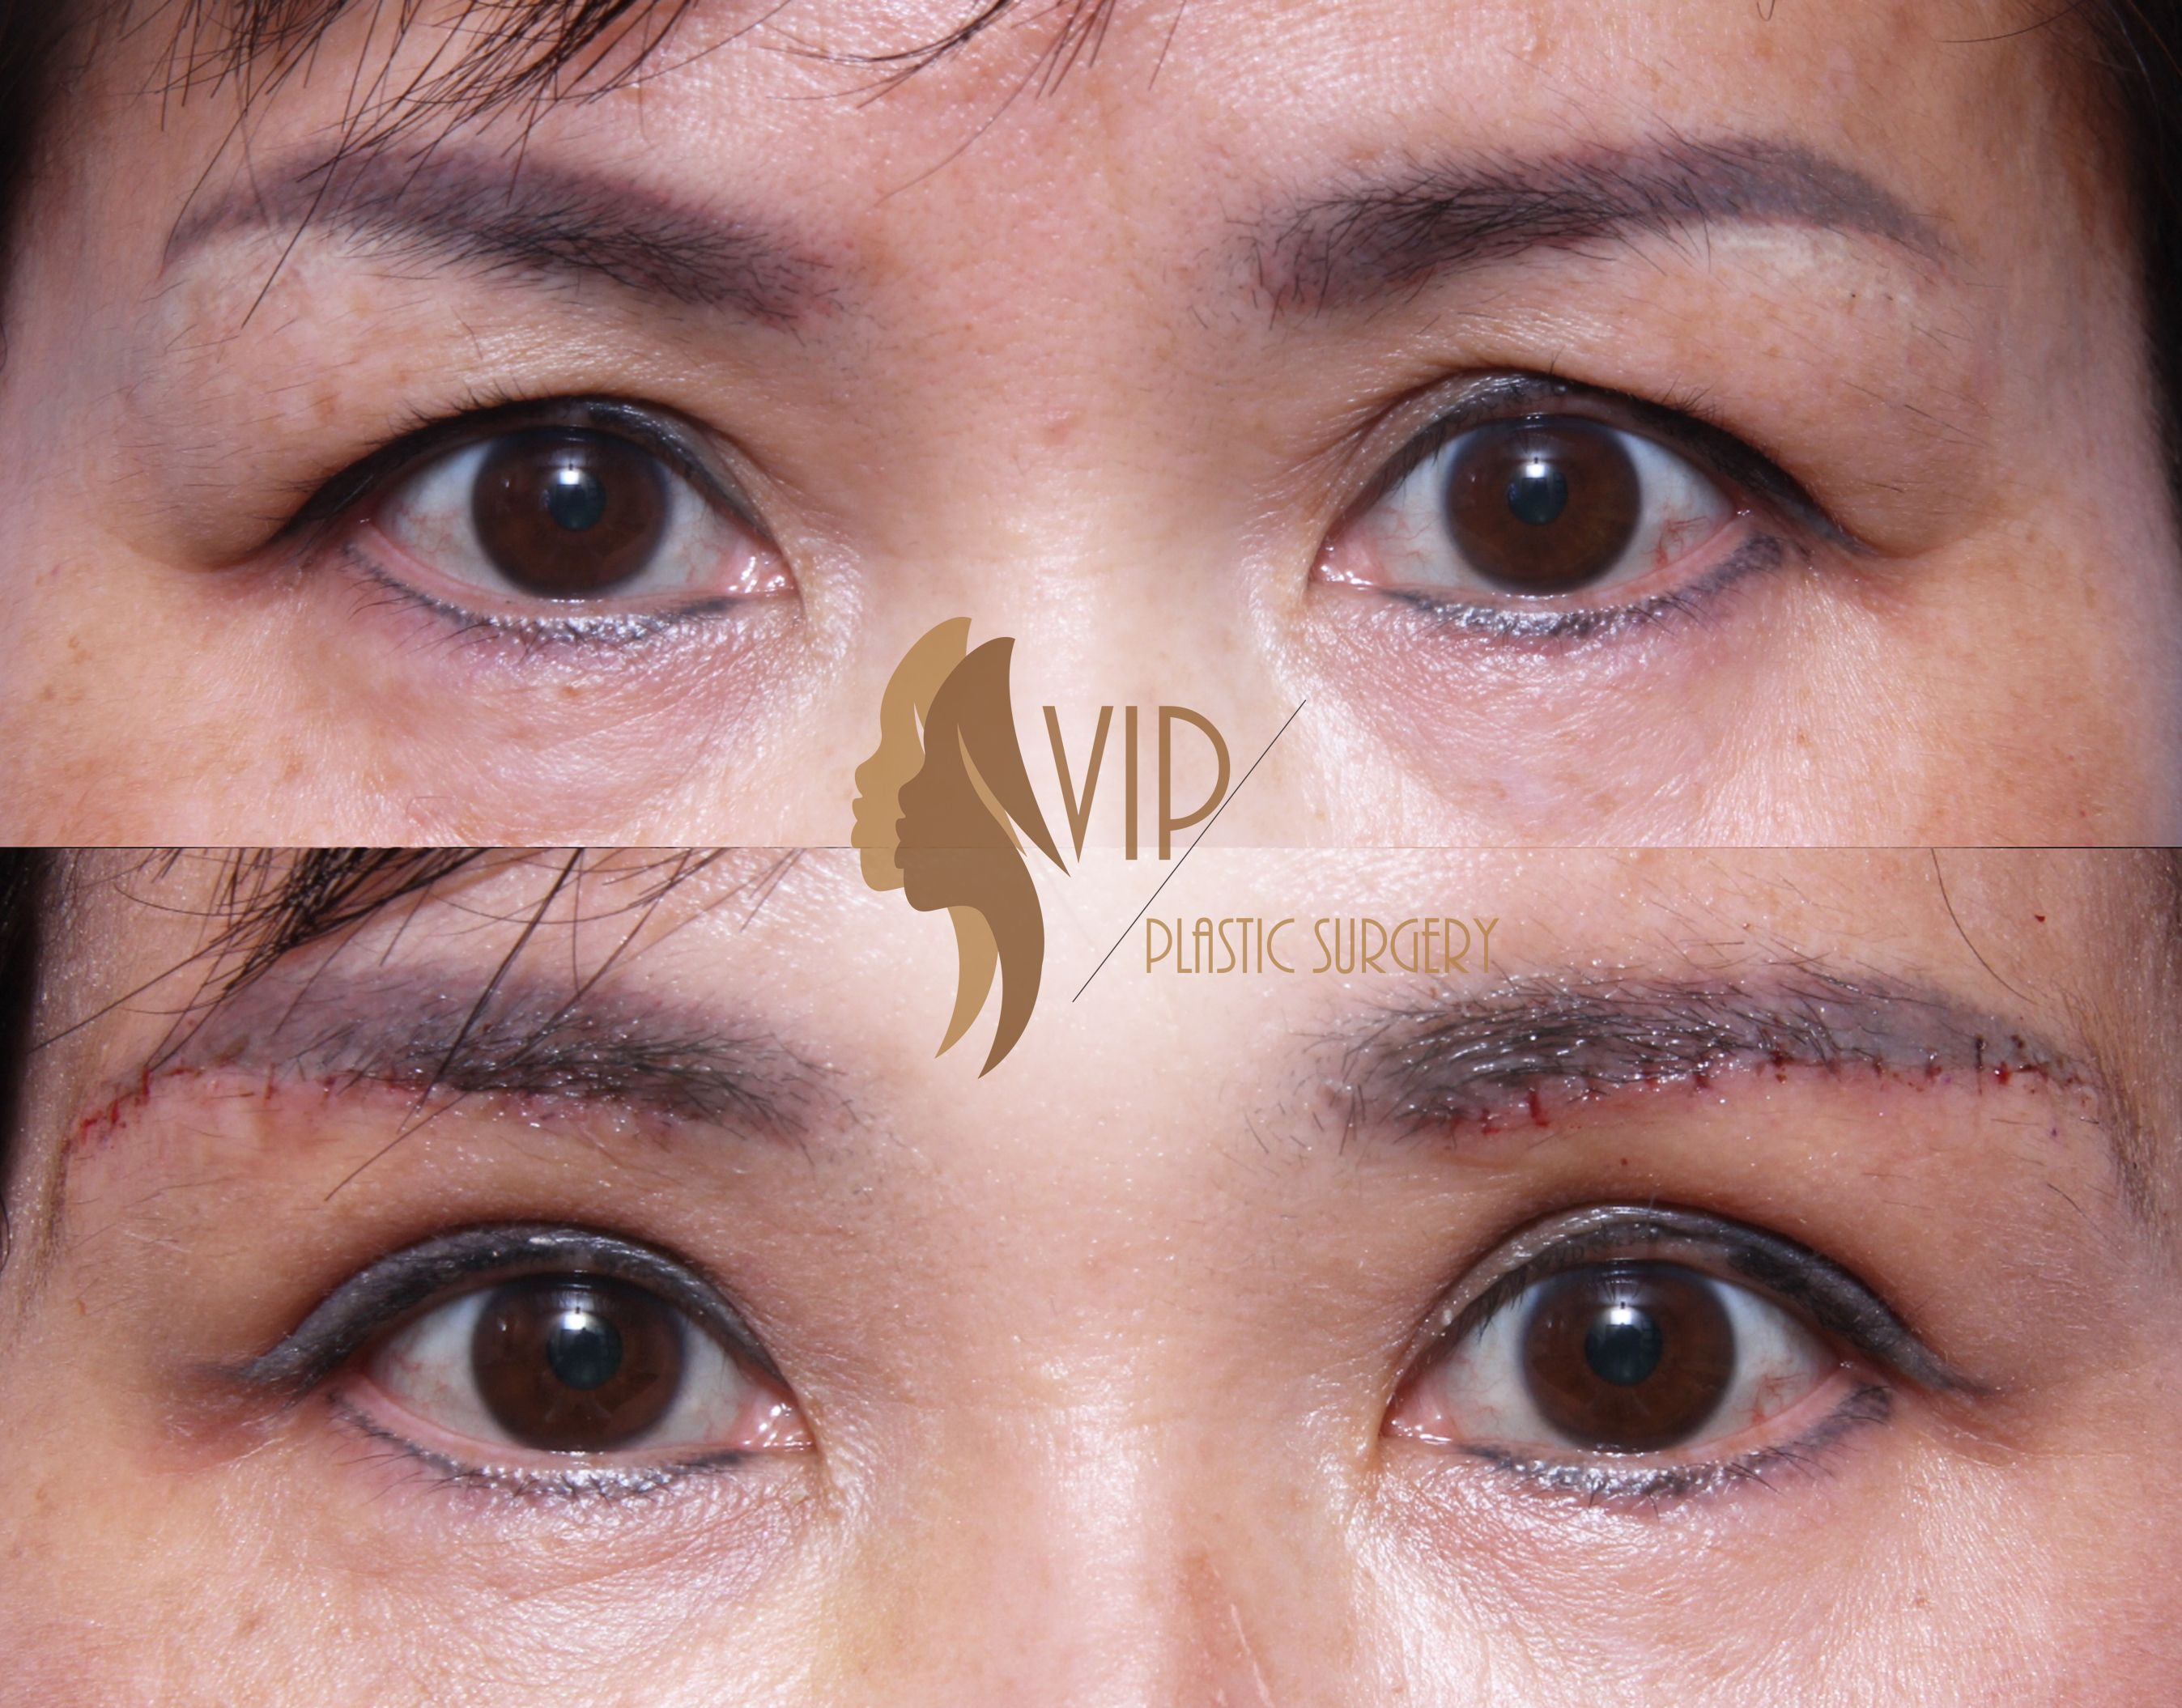 Dr Andrew K Choi Vip Plastic Surgery Los Angeles Under Eyebrow